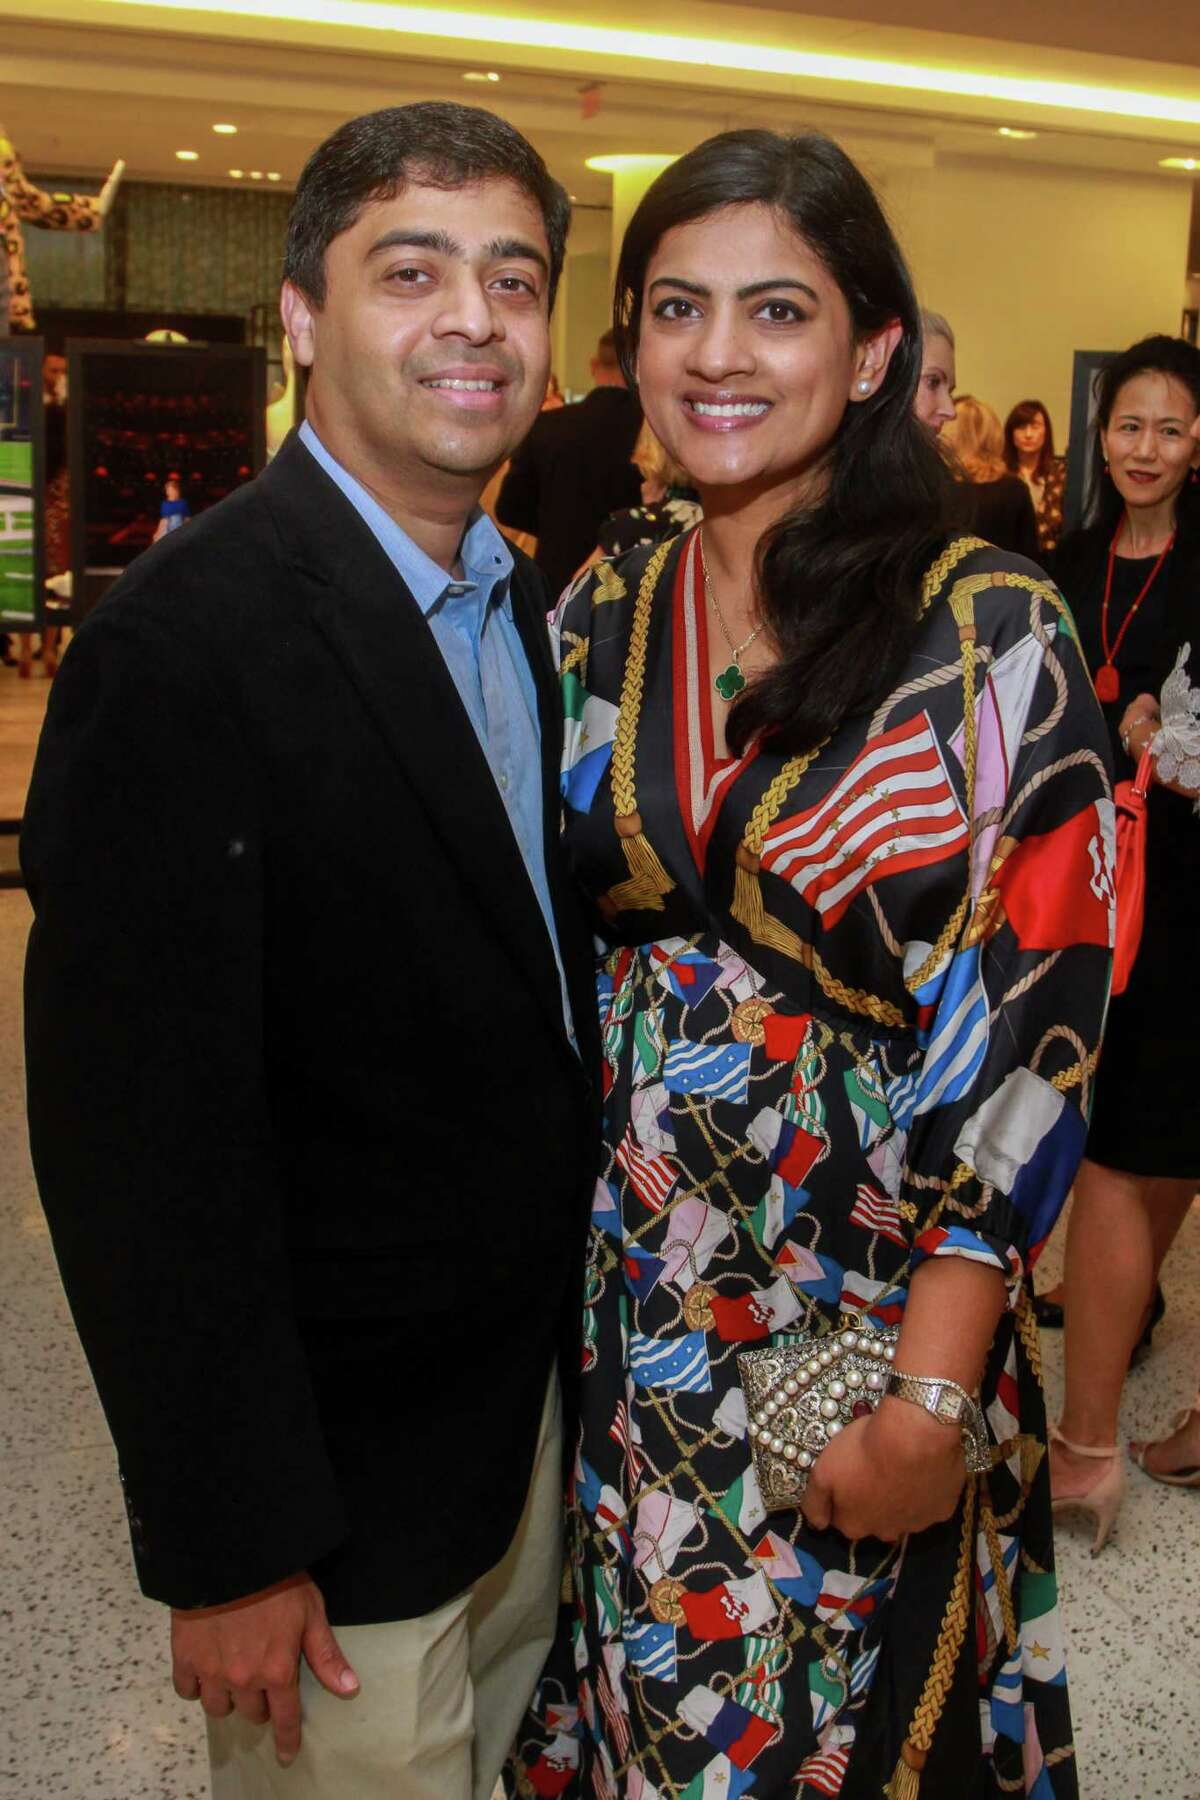 Vivek and Ishwaria Subbiah at the Women of Distinction announcement at Tootsies on September 18, 2019.